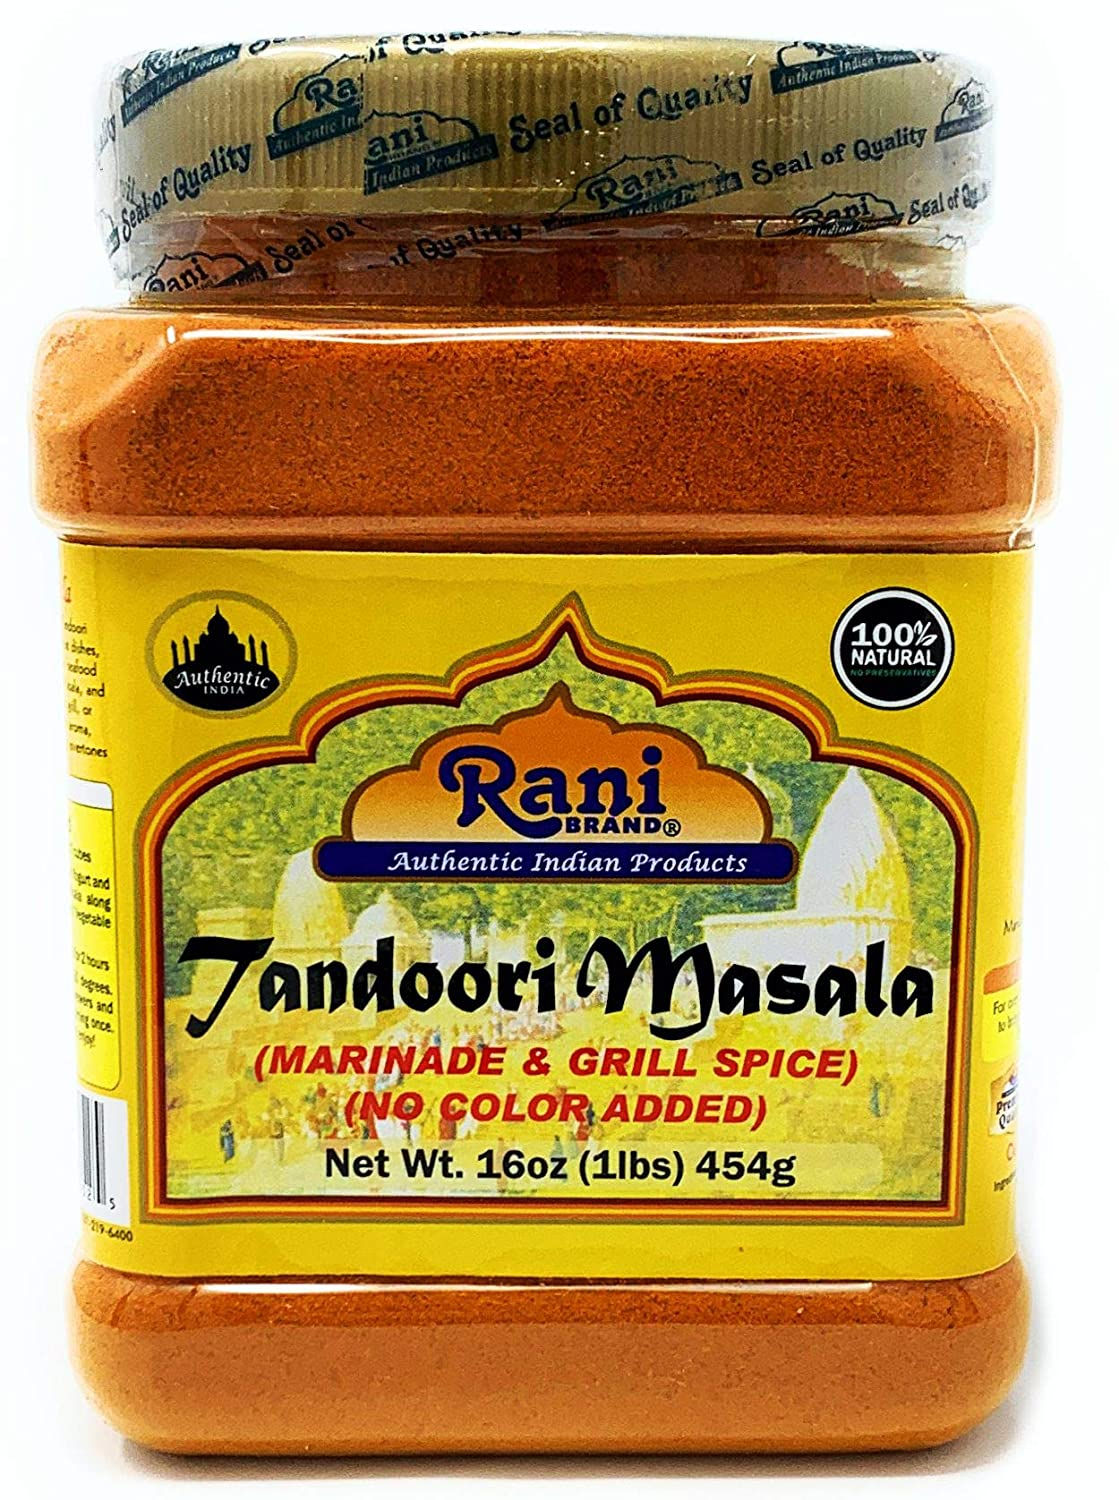 Rani Tandoori Masala (Natural, No Colors Added) Indian 11-Spice Blend 16oz (454g) 1lb PET Jar ~ Salt Free | Vegan | Gluten Free Ingredients | NON-GMO